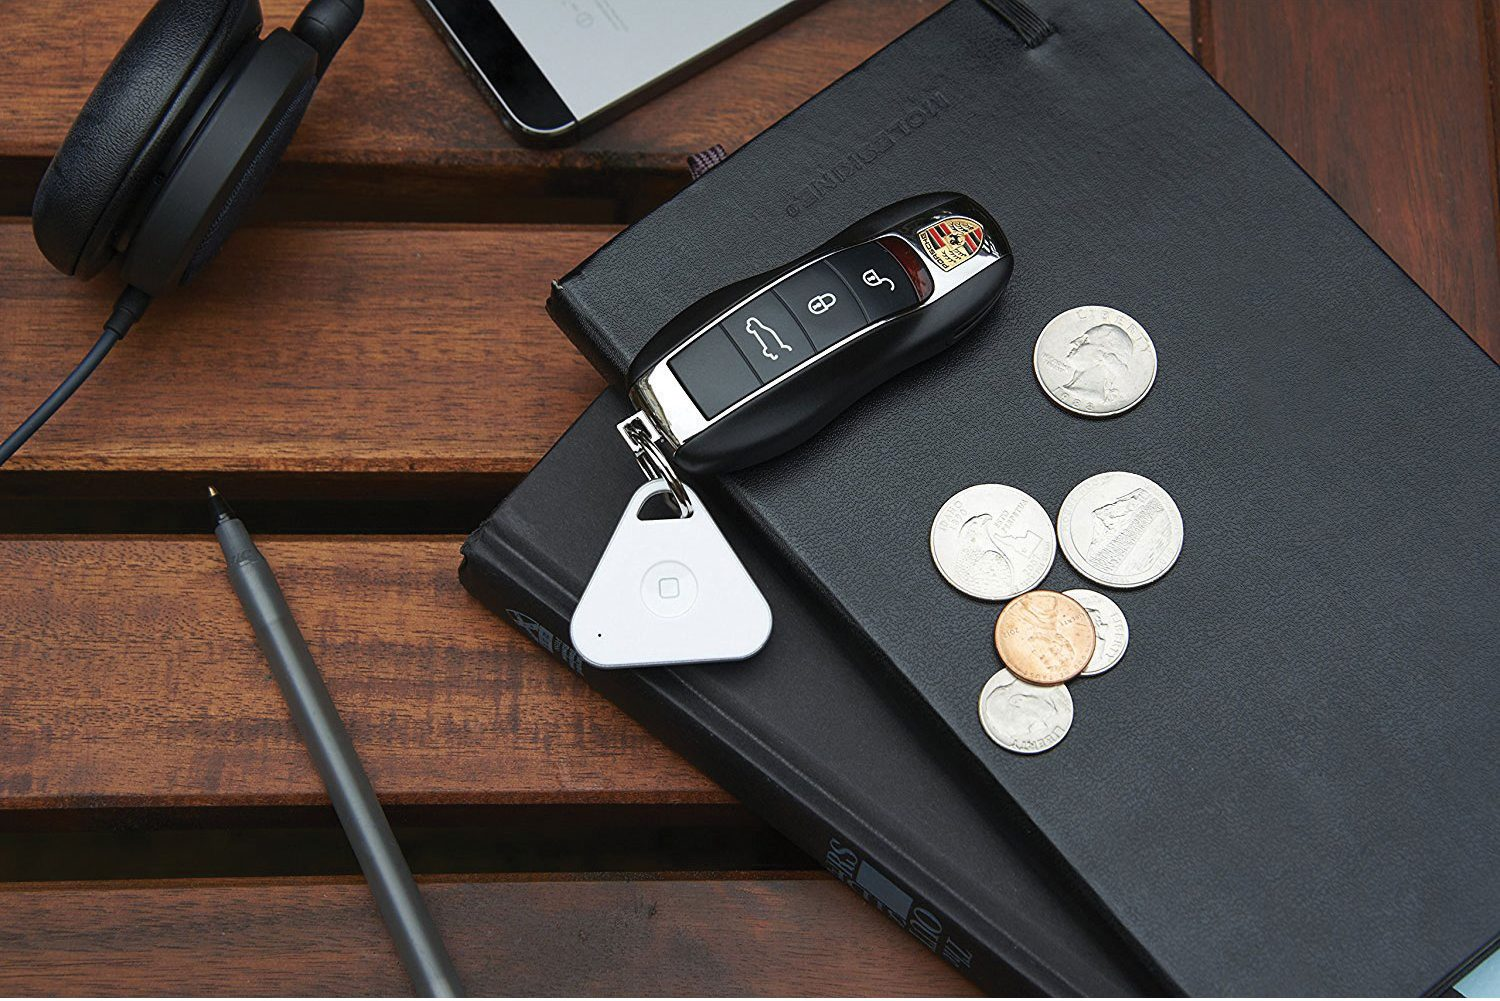 A photo of the iHere key finder attached to a car key